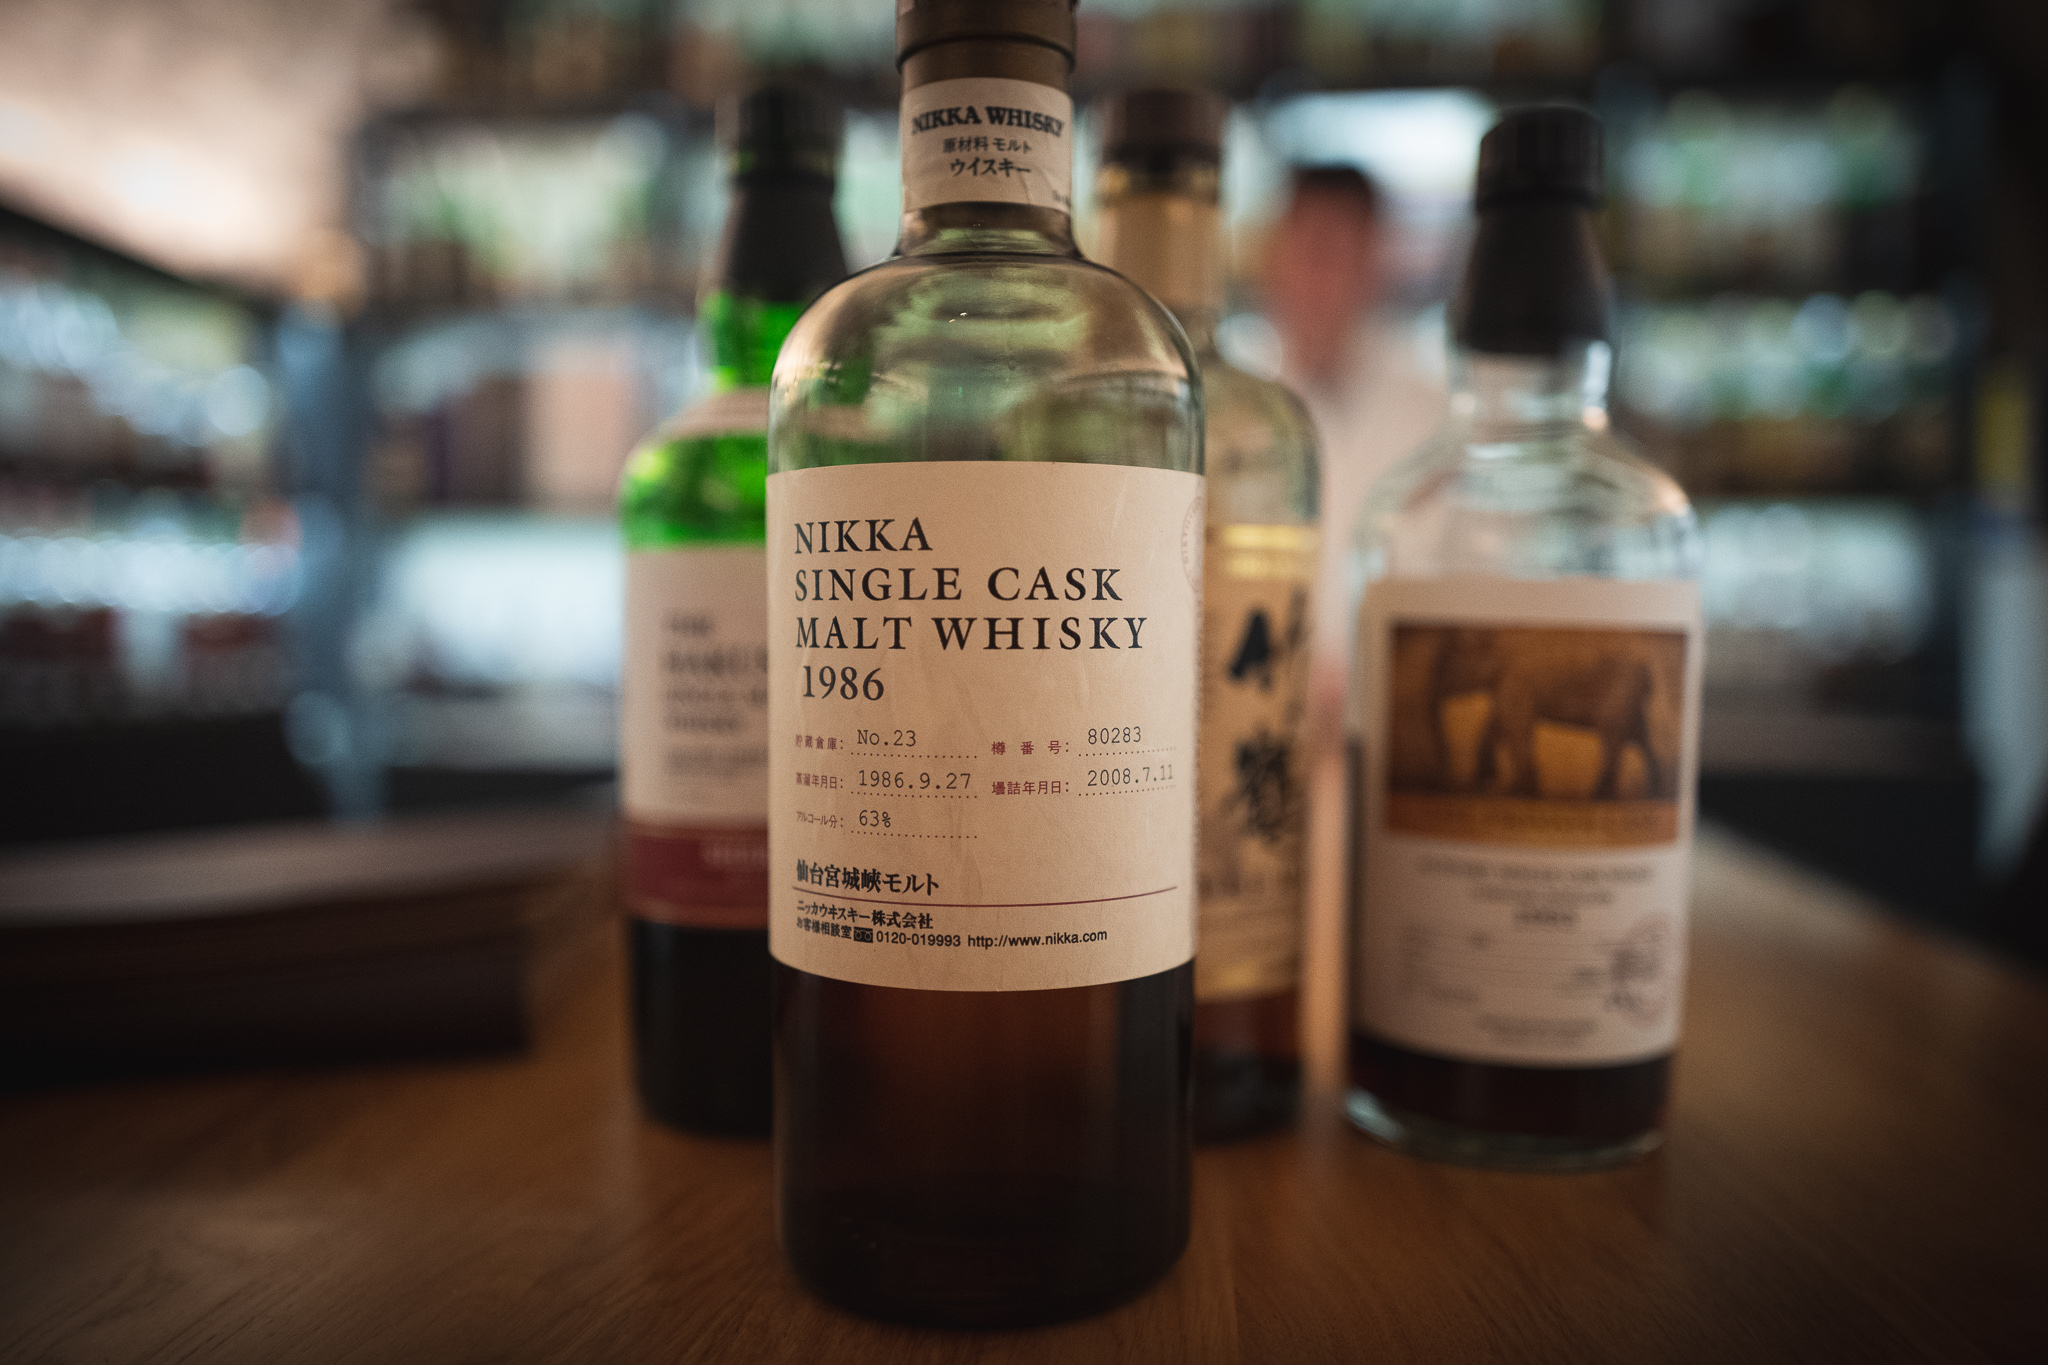 Nikka Single Cask distilled in 1986, bottled in 2008